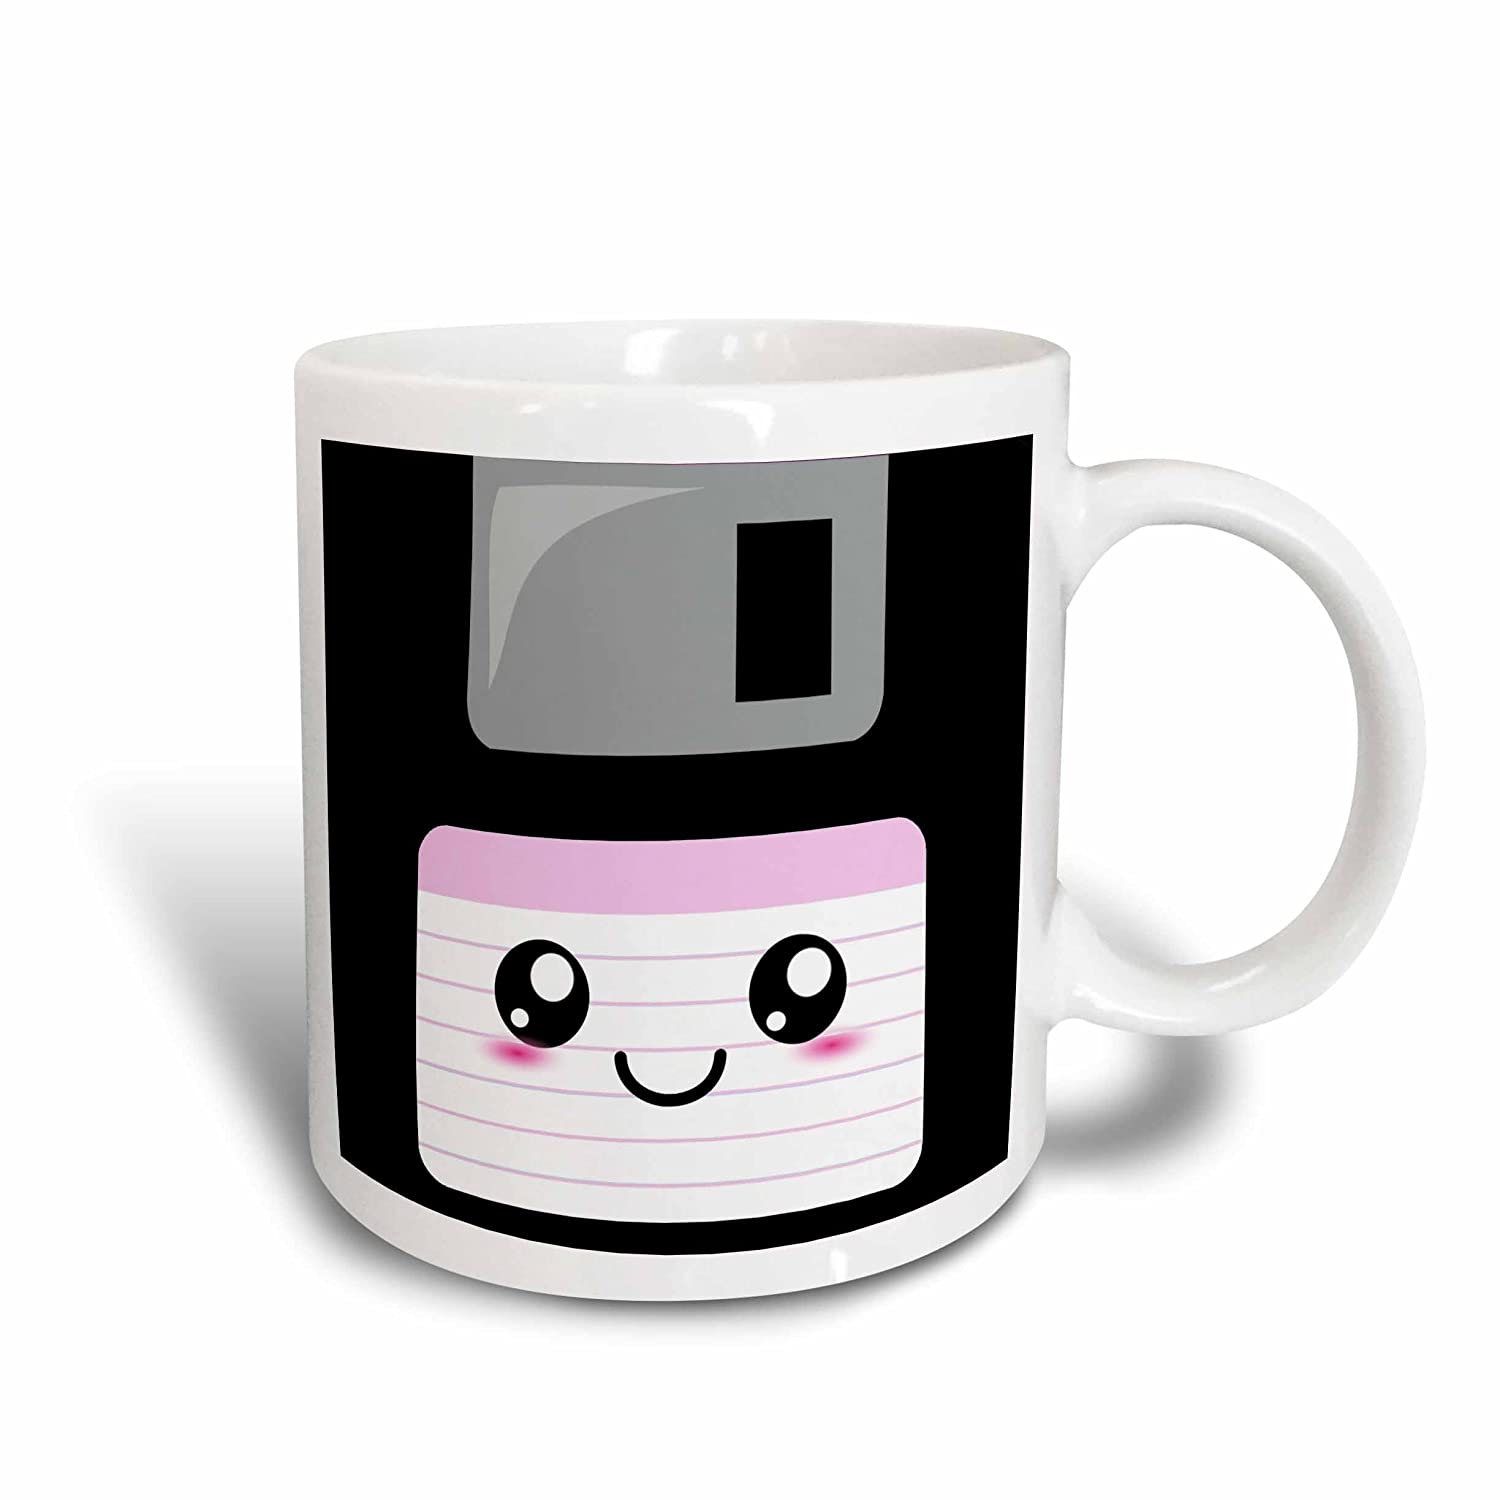 taza floppy kawaii